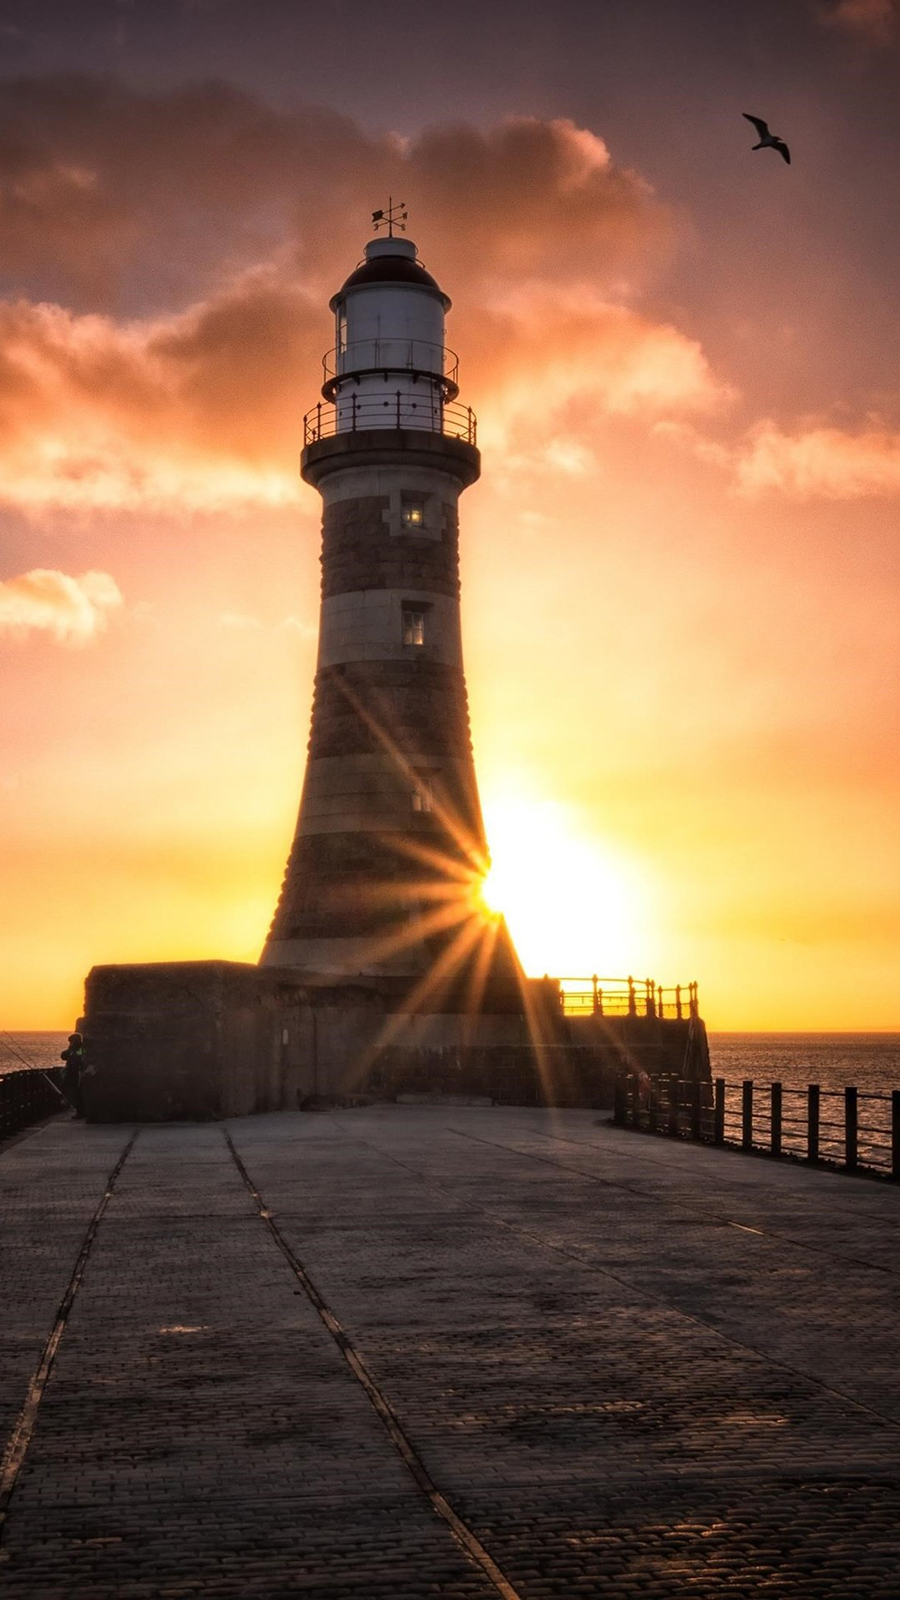 Best Wallpapers about Sea & LightHouse for Phone